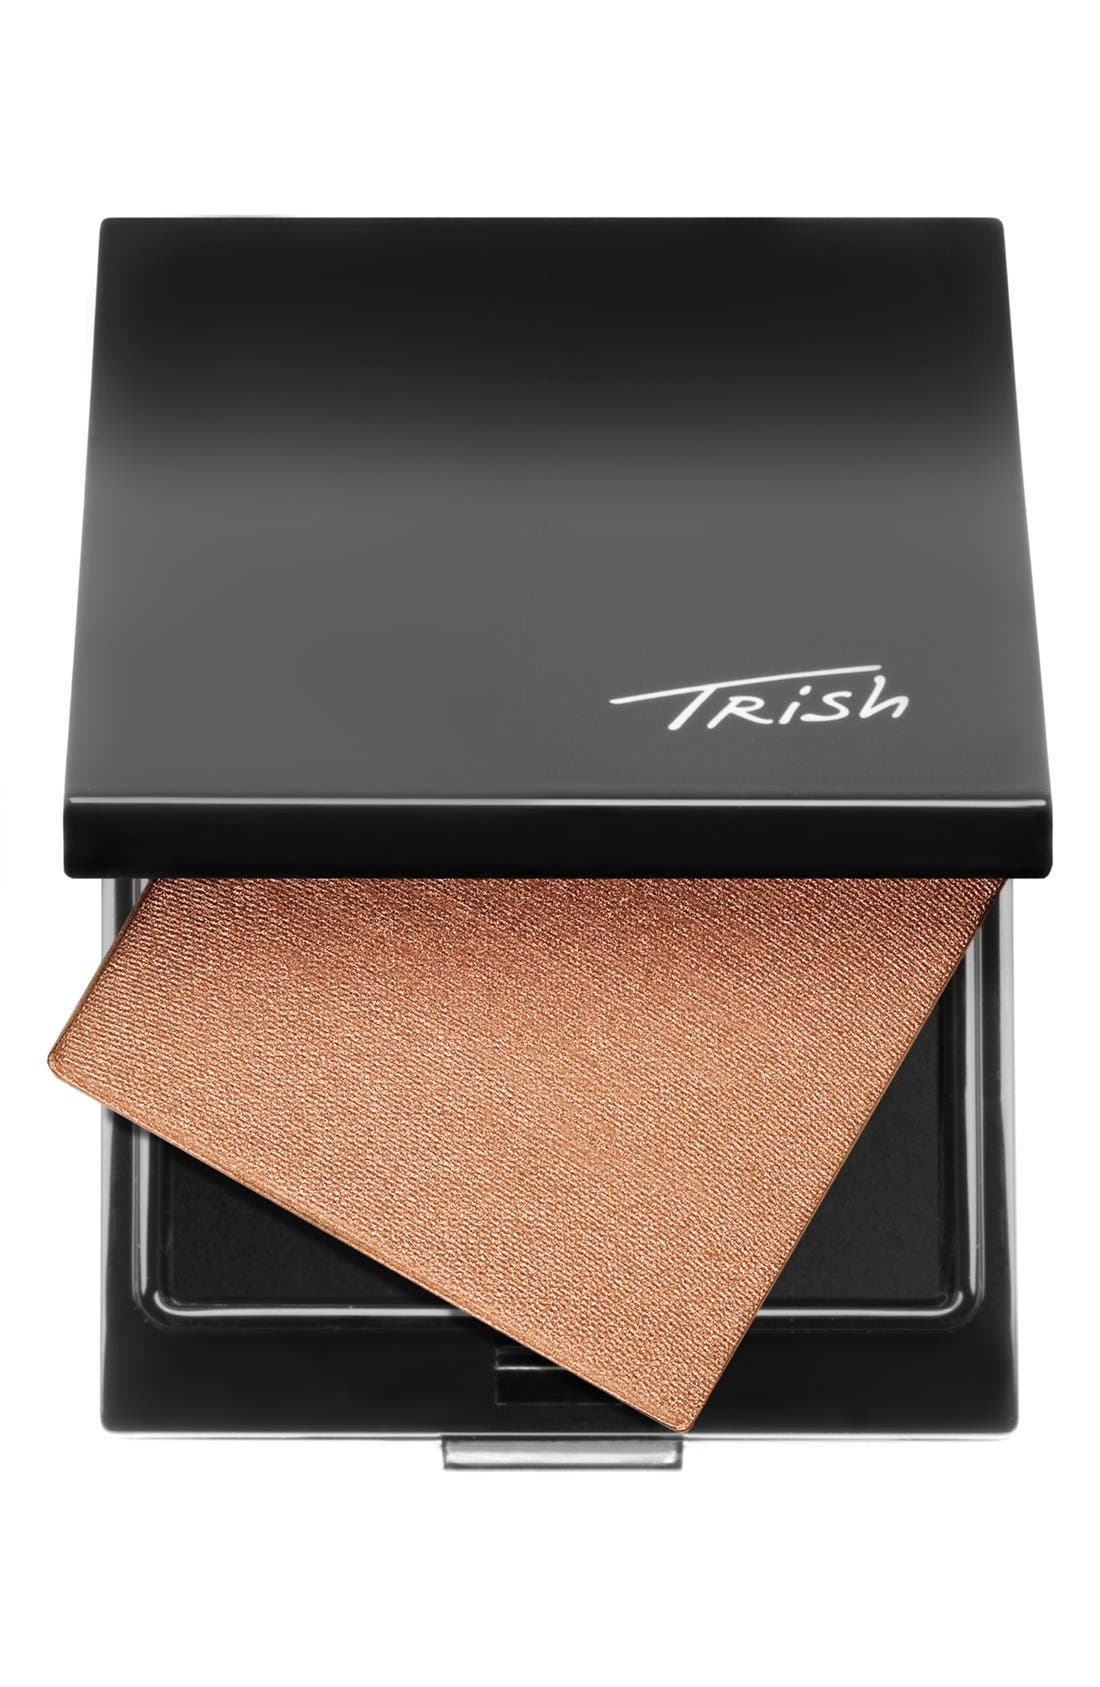 Sunkissed Bronzer Refill,                             Main thumbnail 1, color,                             200